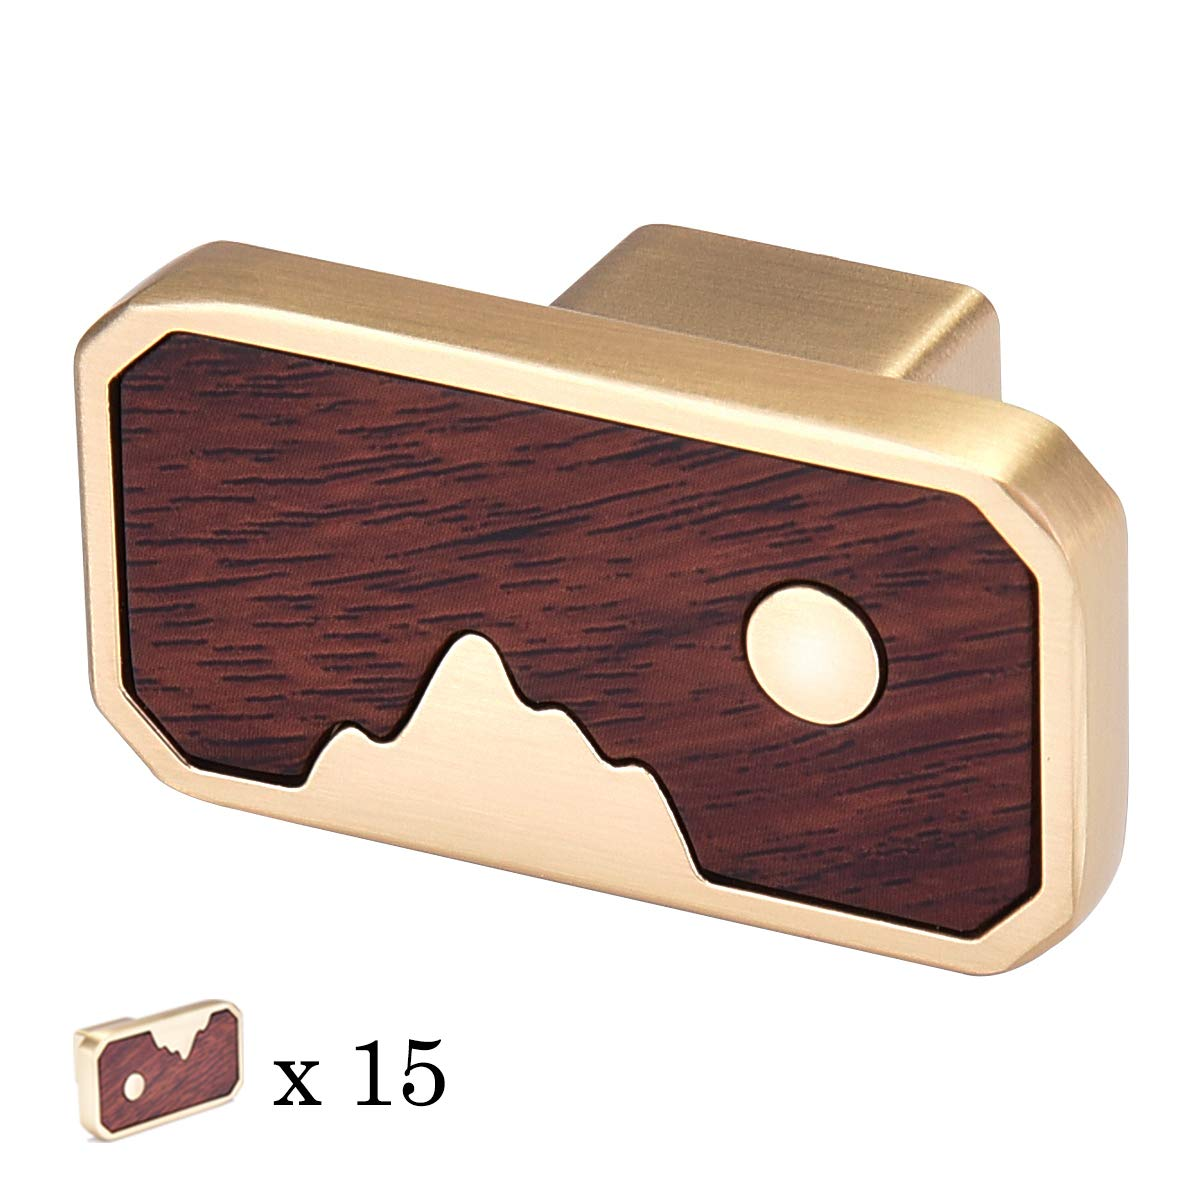 15 Packs Kitchen Cabinet Knobs Pull Handle Vintage,Frylr Euro Style Drawer/Dresser/Wardrobe/Furniture Knob Handles Gold & Walnut 1.8x1 Inch- Simple Mountain & Moon for Alloyed Decor Bar Puller Pullers